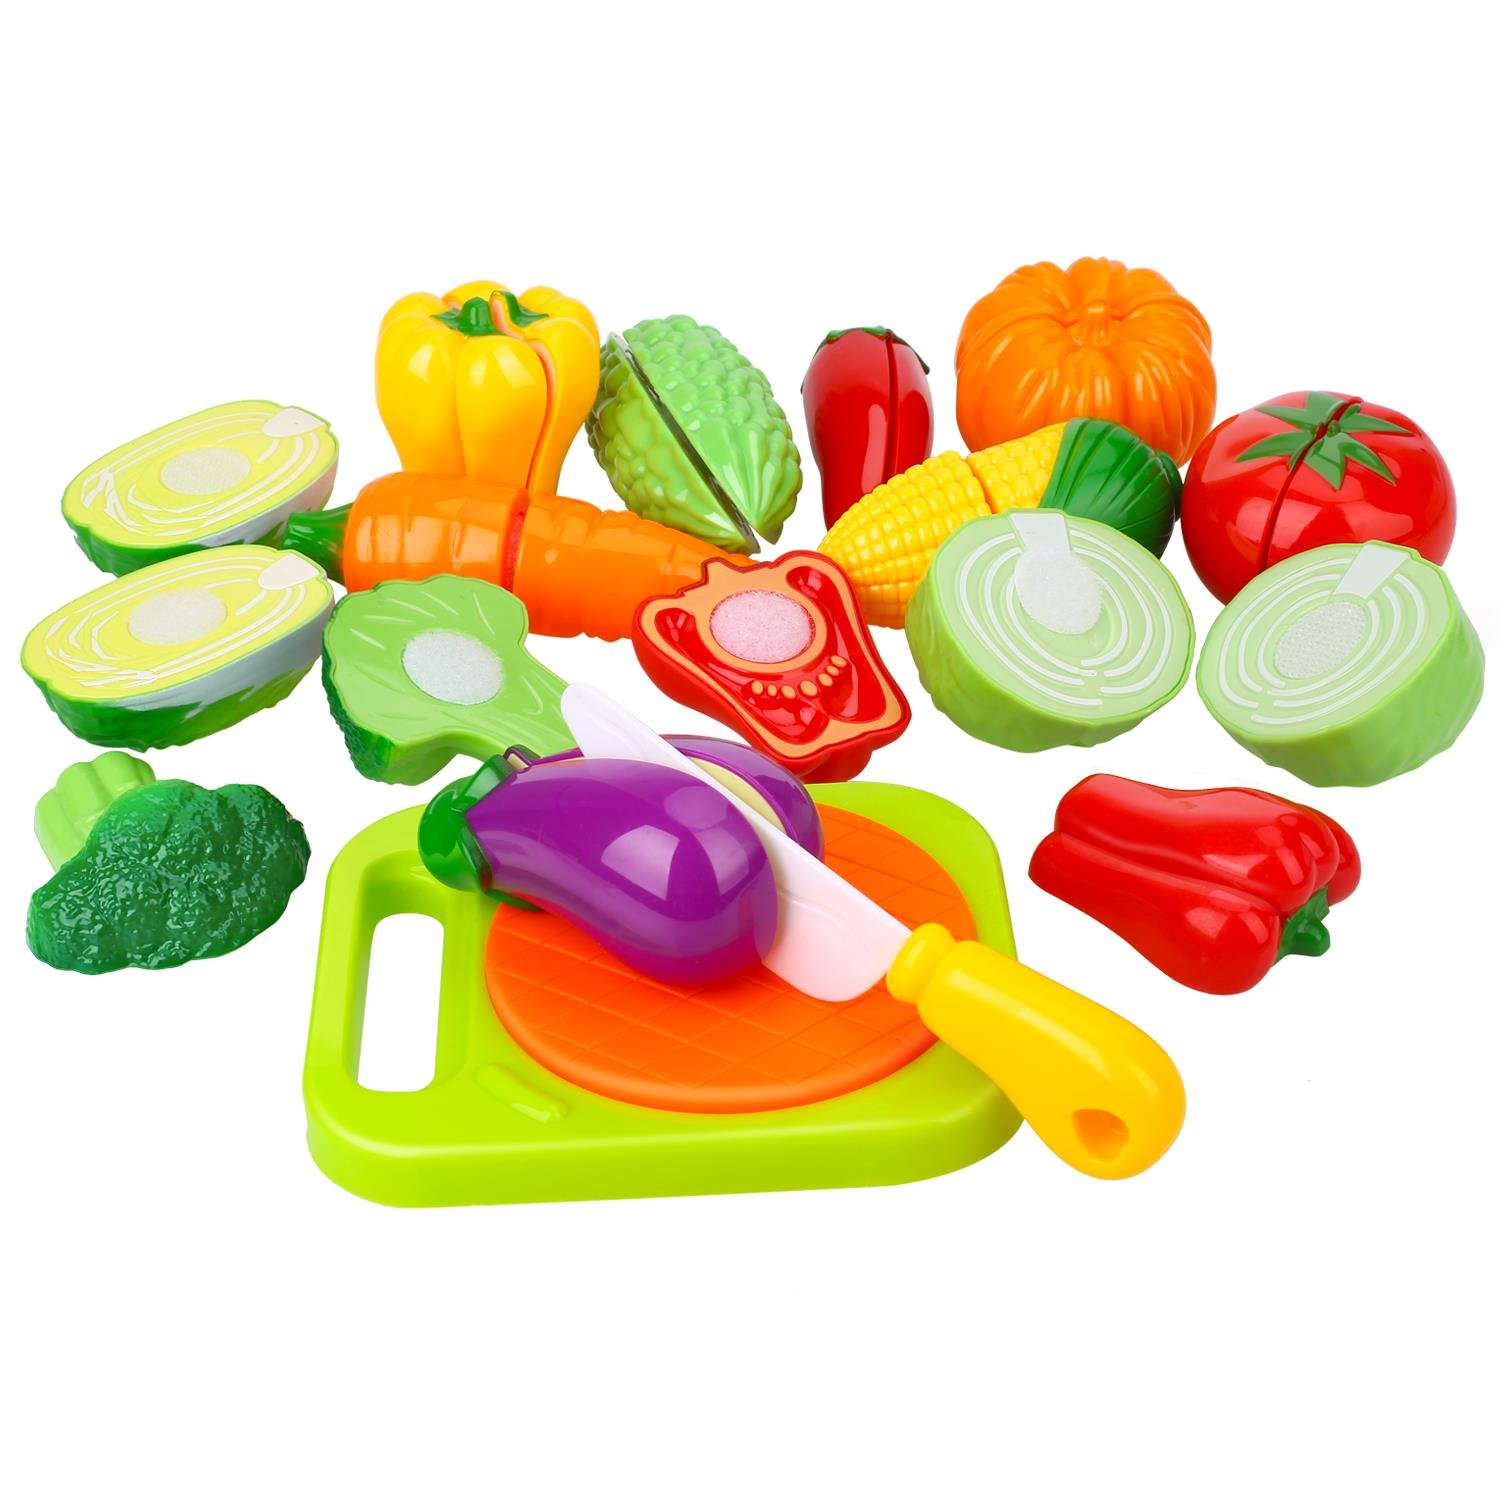 Play Food Cutting Set for Kids Kitchen Play Game with Plastic Velcro Vegetables Cutting Board Set and Apron by Peradix